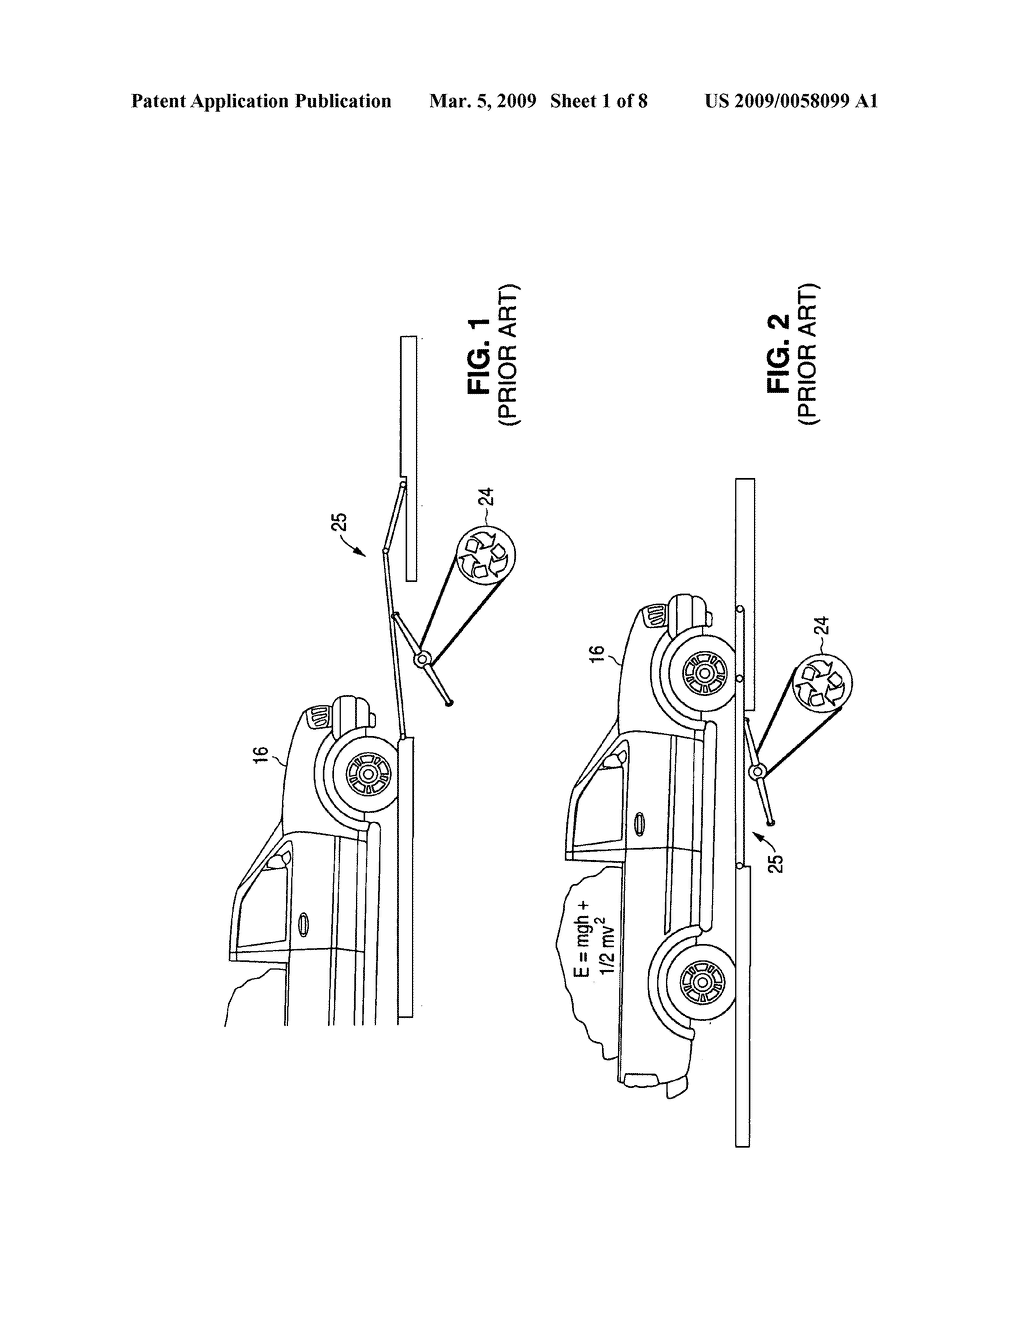 Electro Gravity Plates For Generating Electricity From Passage Of Diagram Vehicles Over The Schematic And Image 02